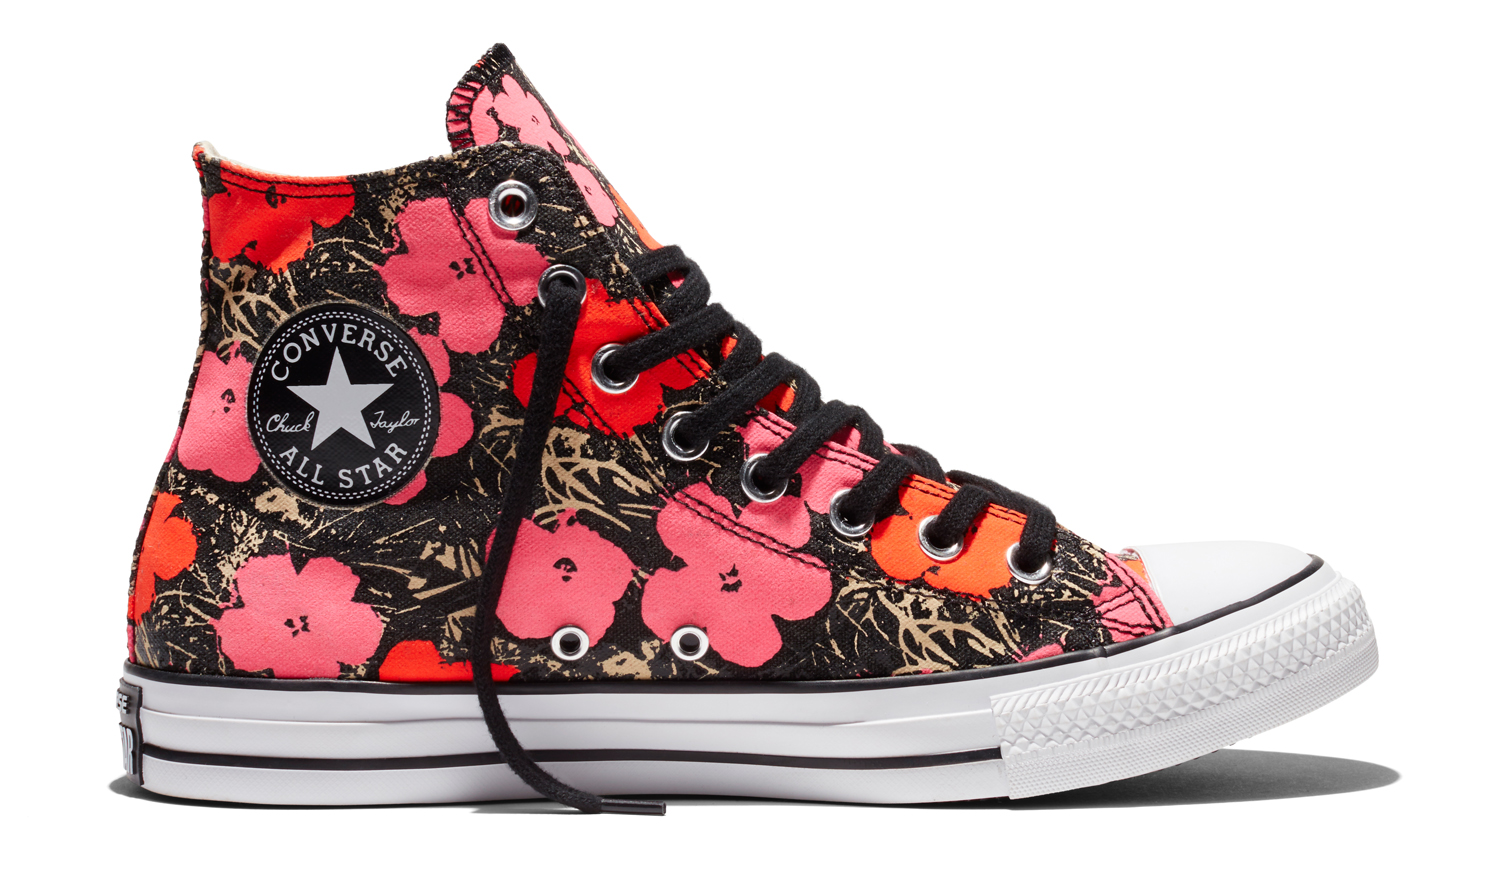 caae688d5f9cbd Converse Makes Glow in the Dark Andy Warhol Chuck Taylors